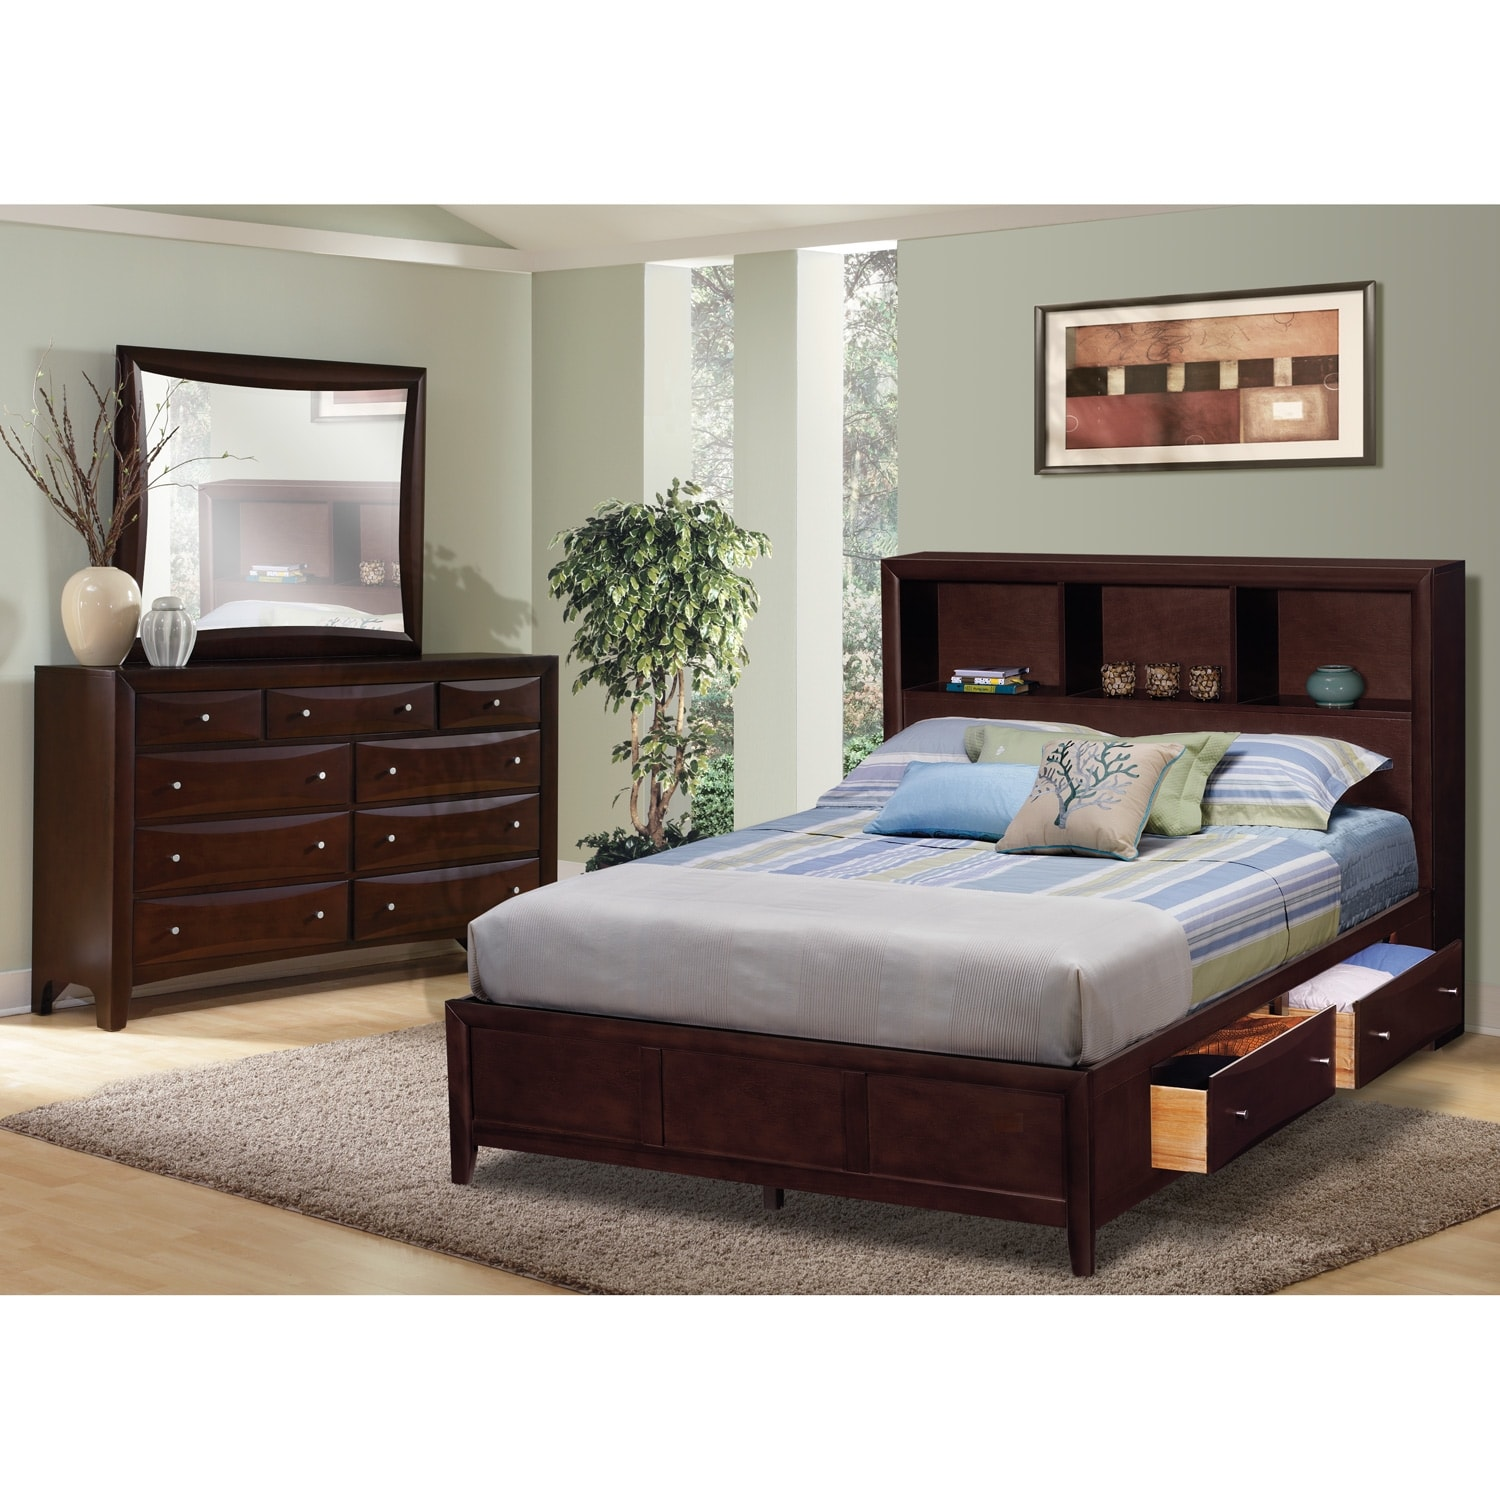 Kensington 5 Pc King Wall Bedroom Furniture Com Iphone Wallpapers Free Beautiful  HD Wallpapers, Images Over 1000+ [getprihce.gq]